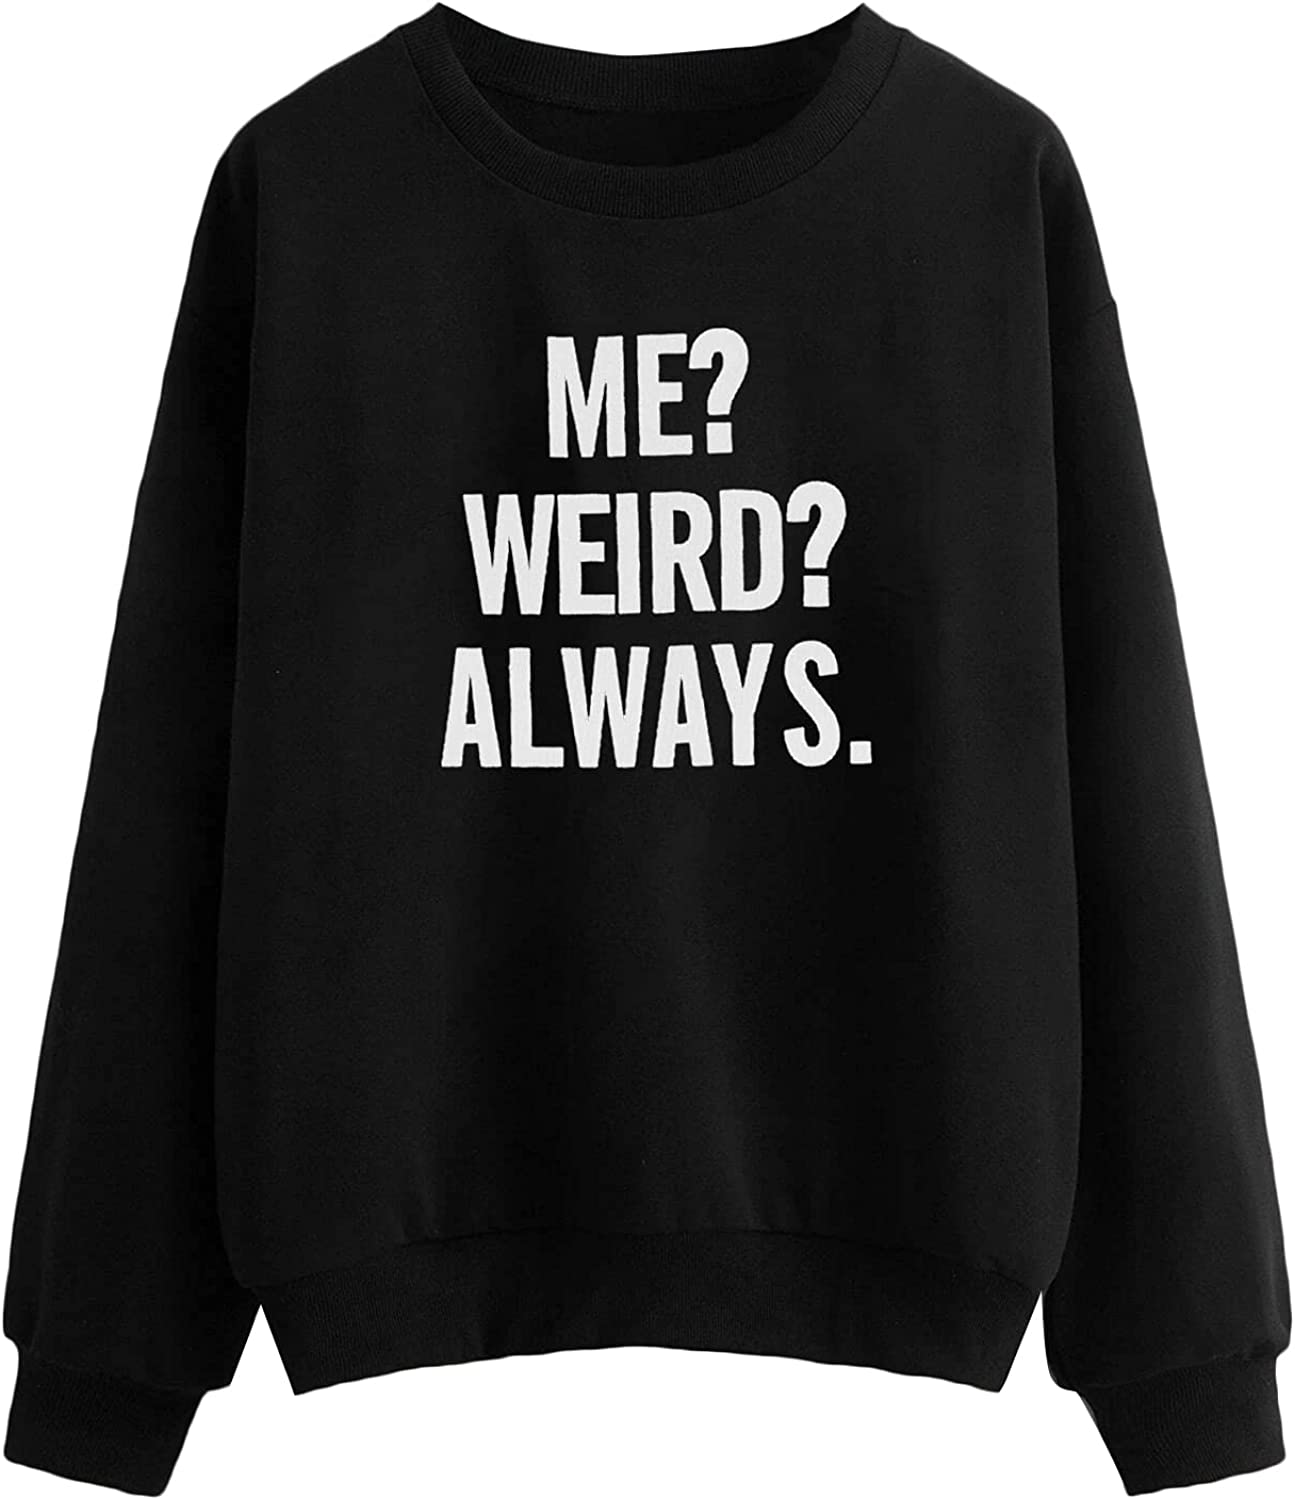 SOLY HUX Women's Plus Size Letter Print Long Sleeve Top Pullover Sweatshirt